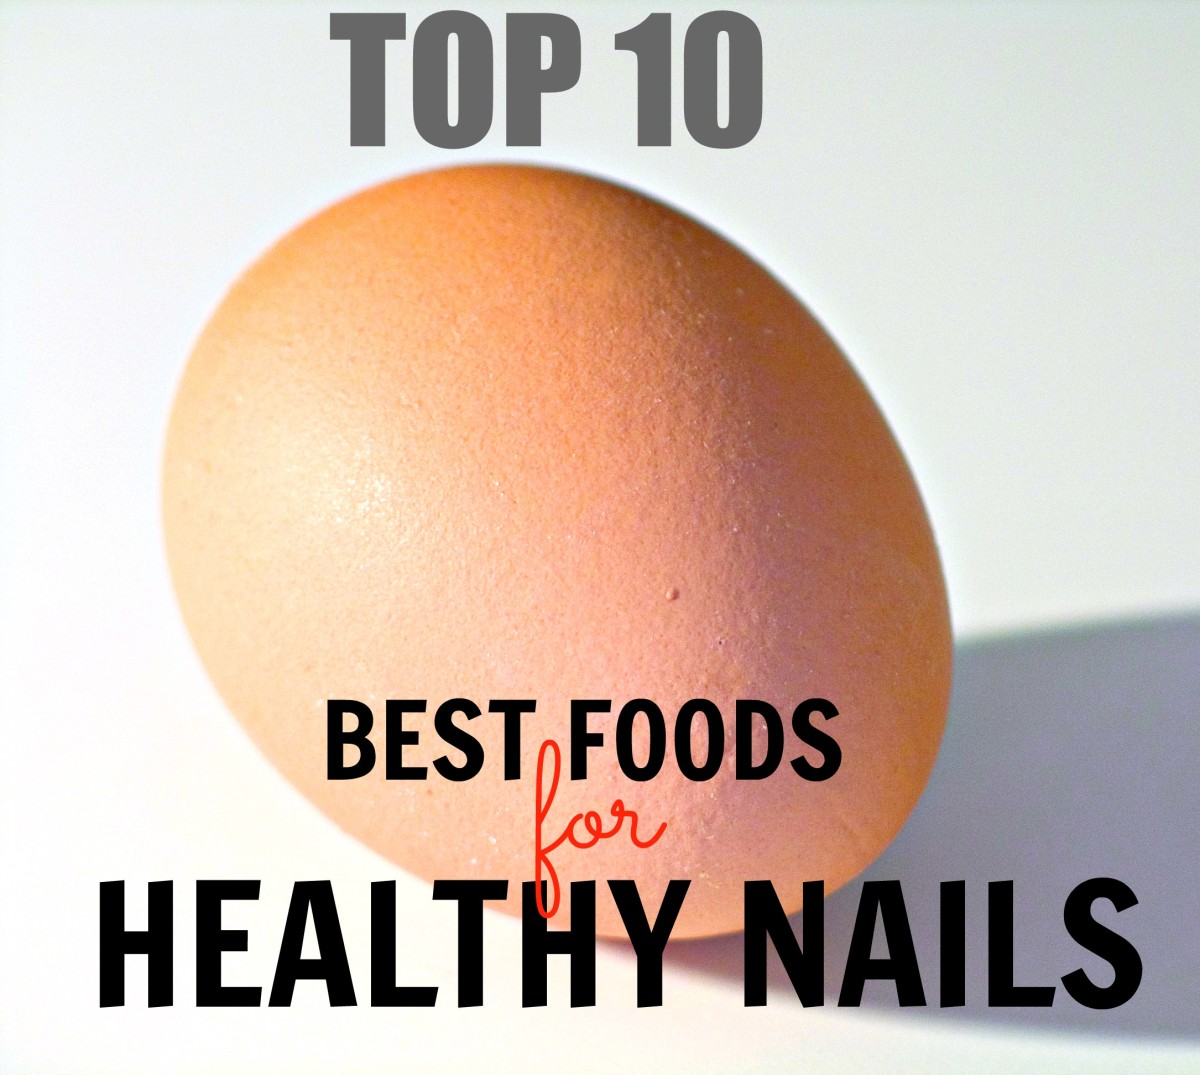 Best 10 Foods for Healthy Nails